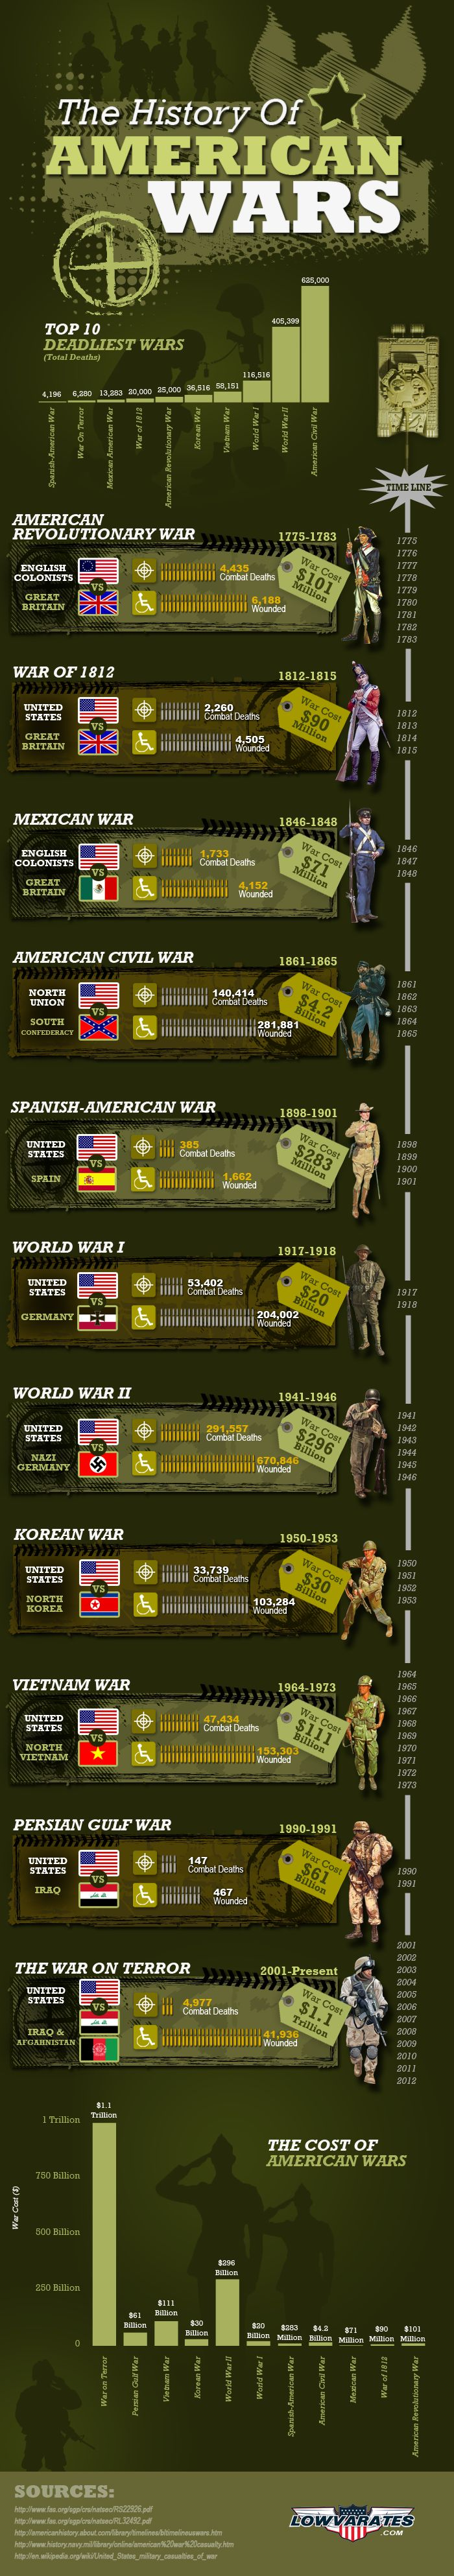 The History of American Wars - Veterans Day